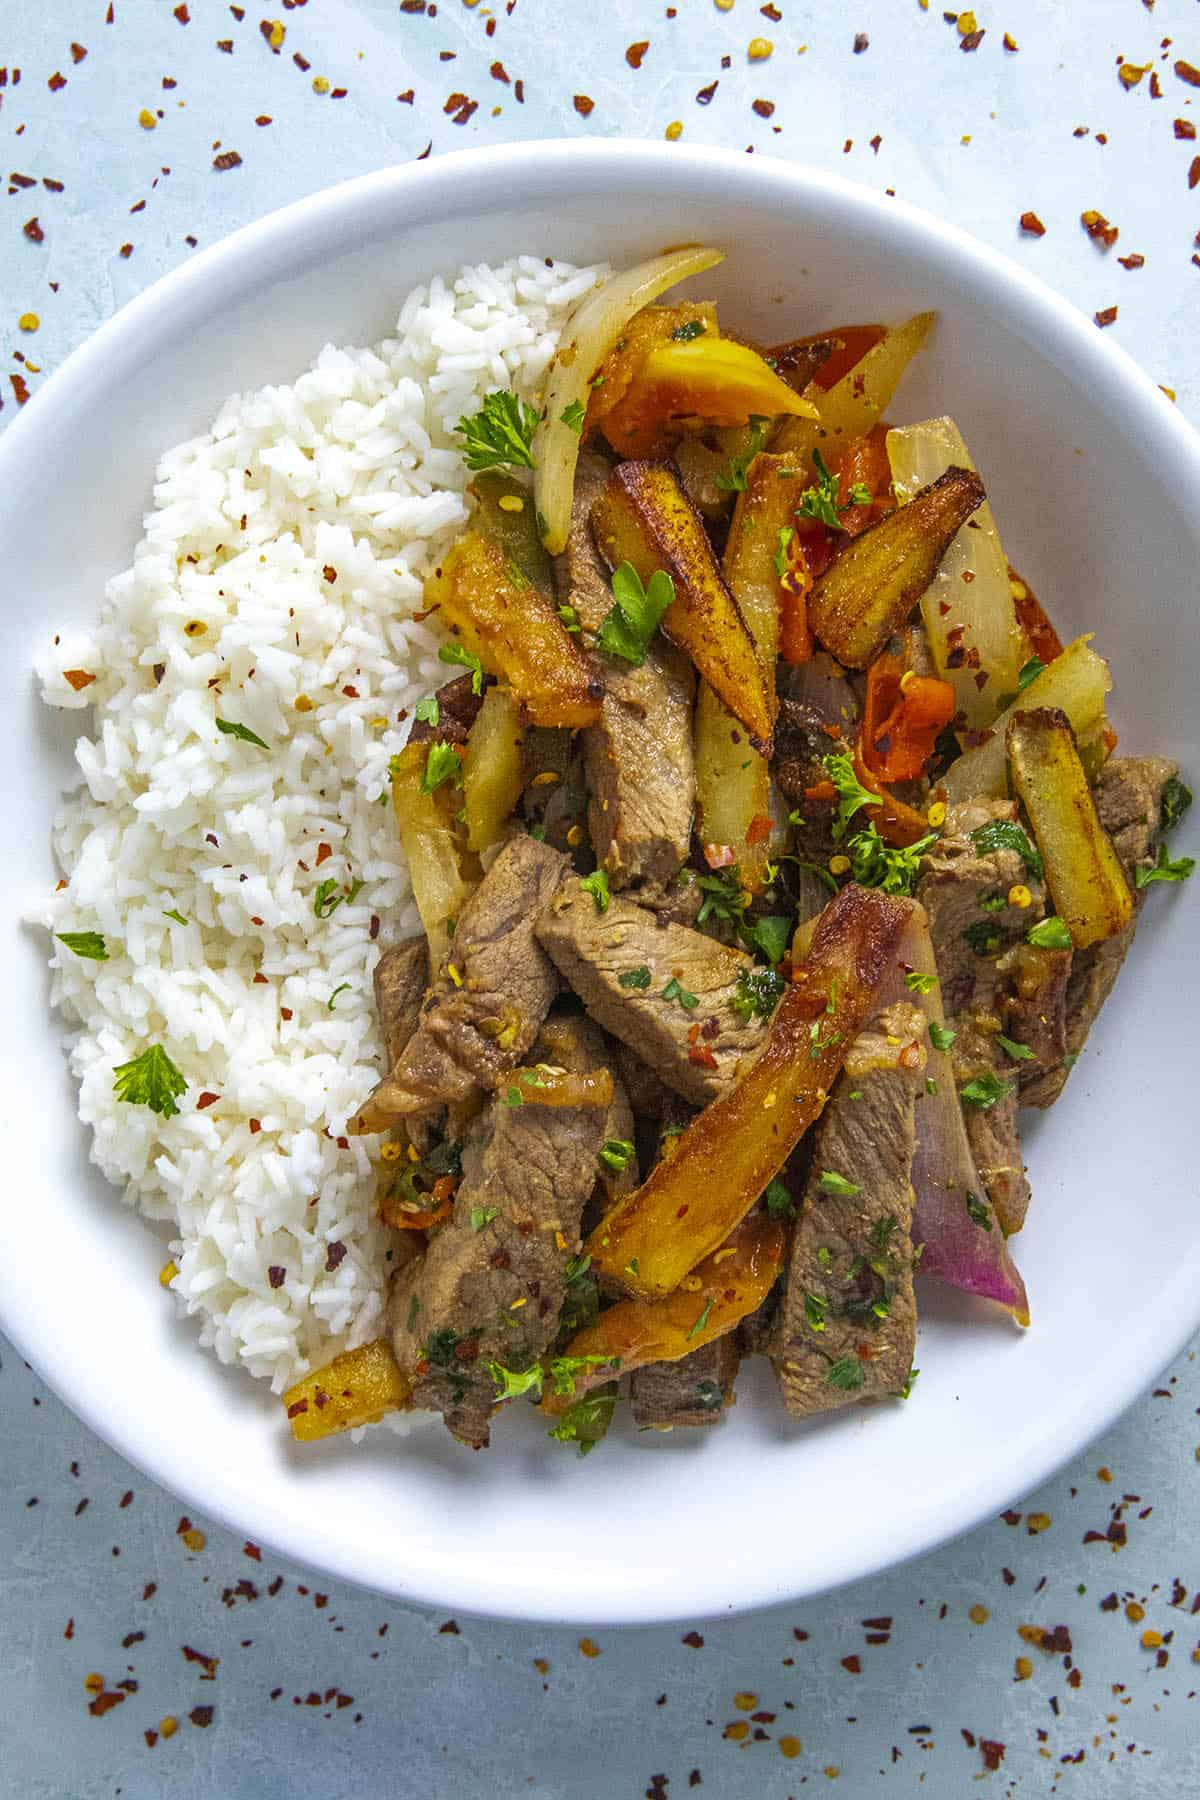 Peruvian Beef Stir Fry with French Fries (Lomo Saltado) in a bowl